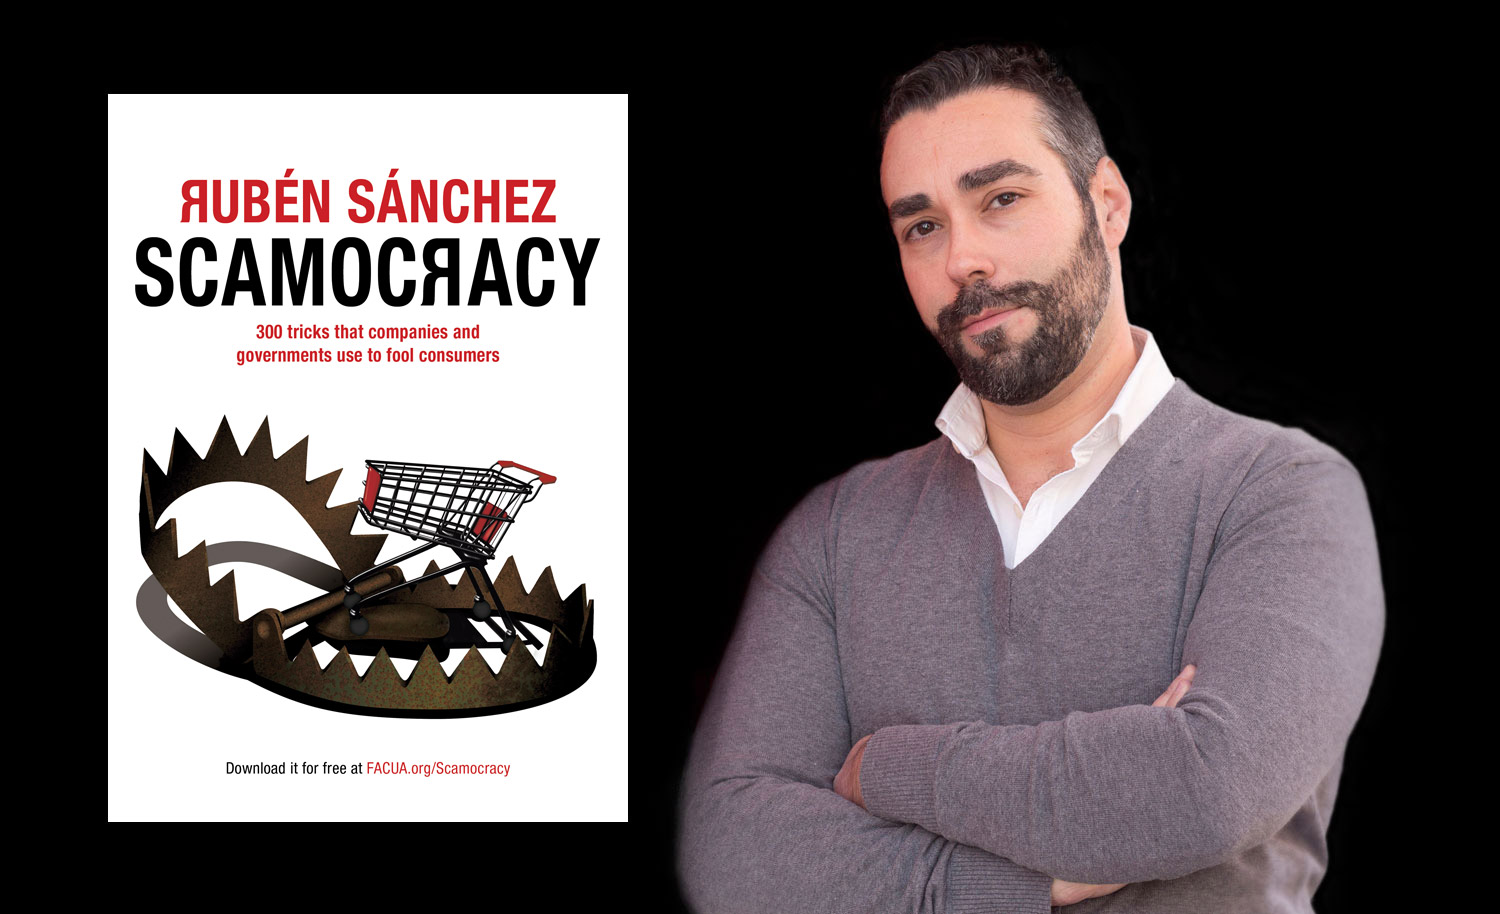 Scamocracy (Timocracia, in Spanish), Rubén Sánchez's new book, will be published in October, 21